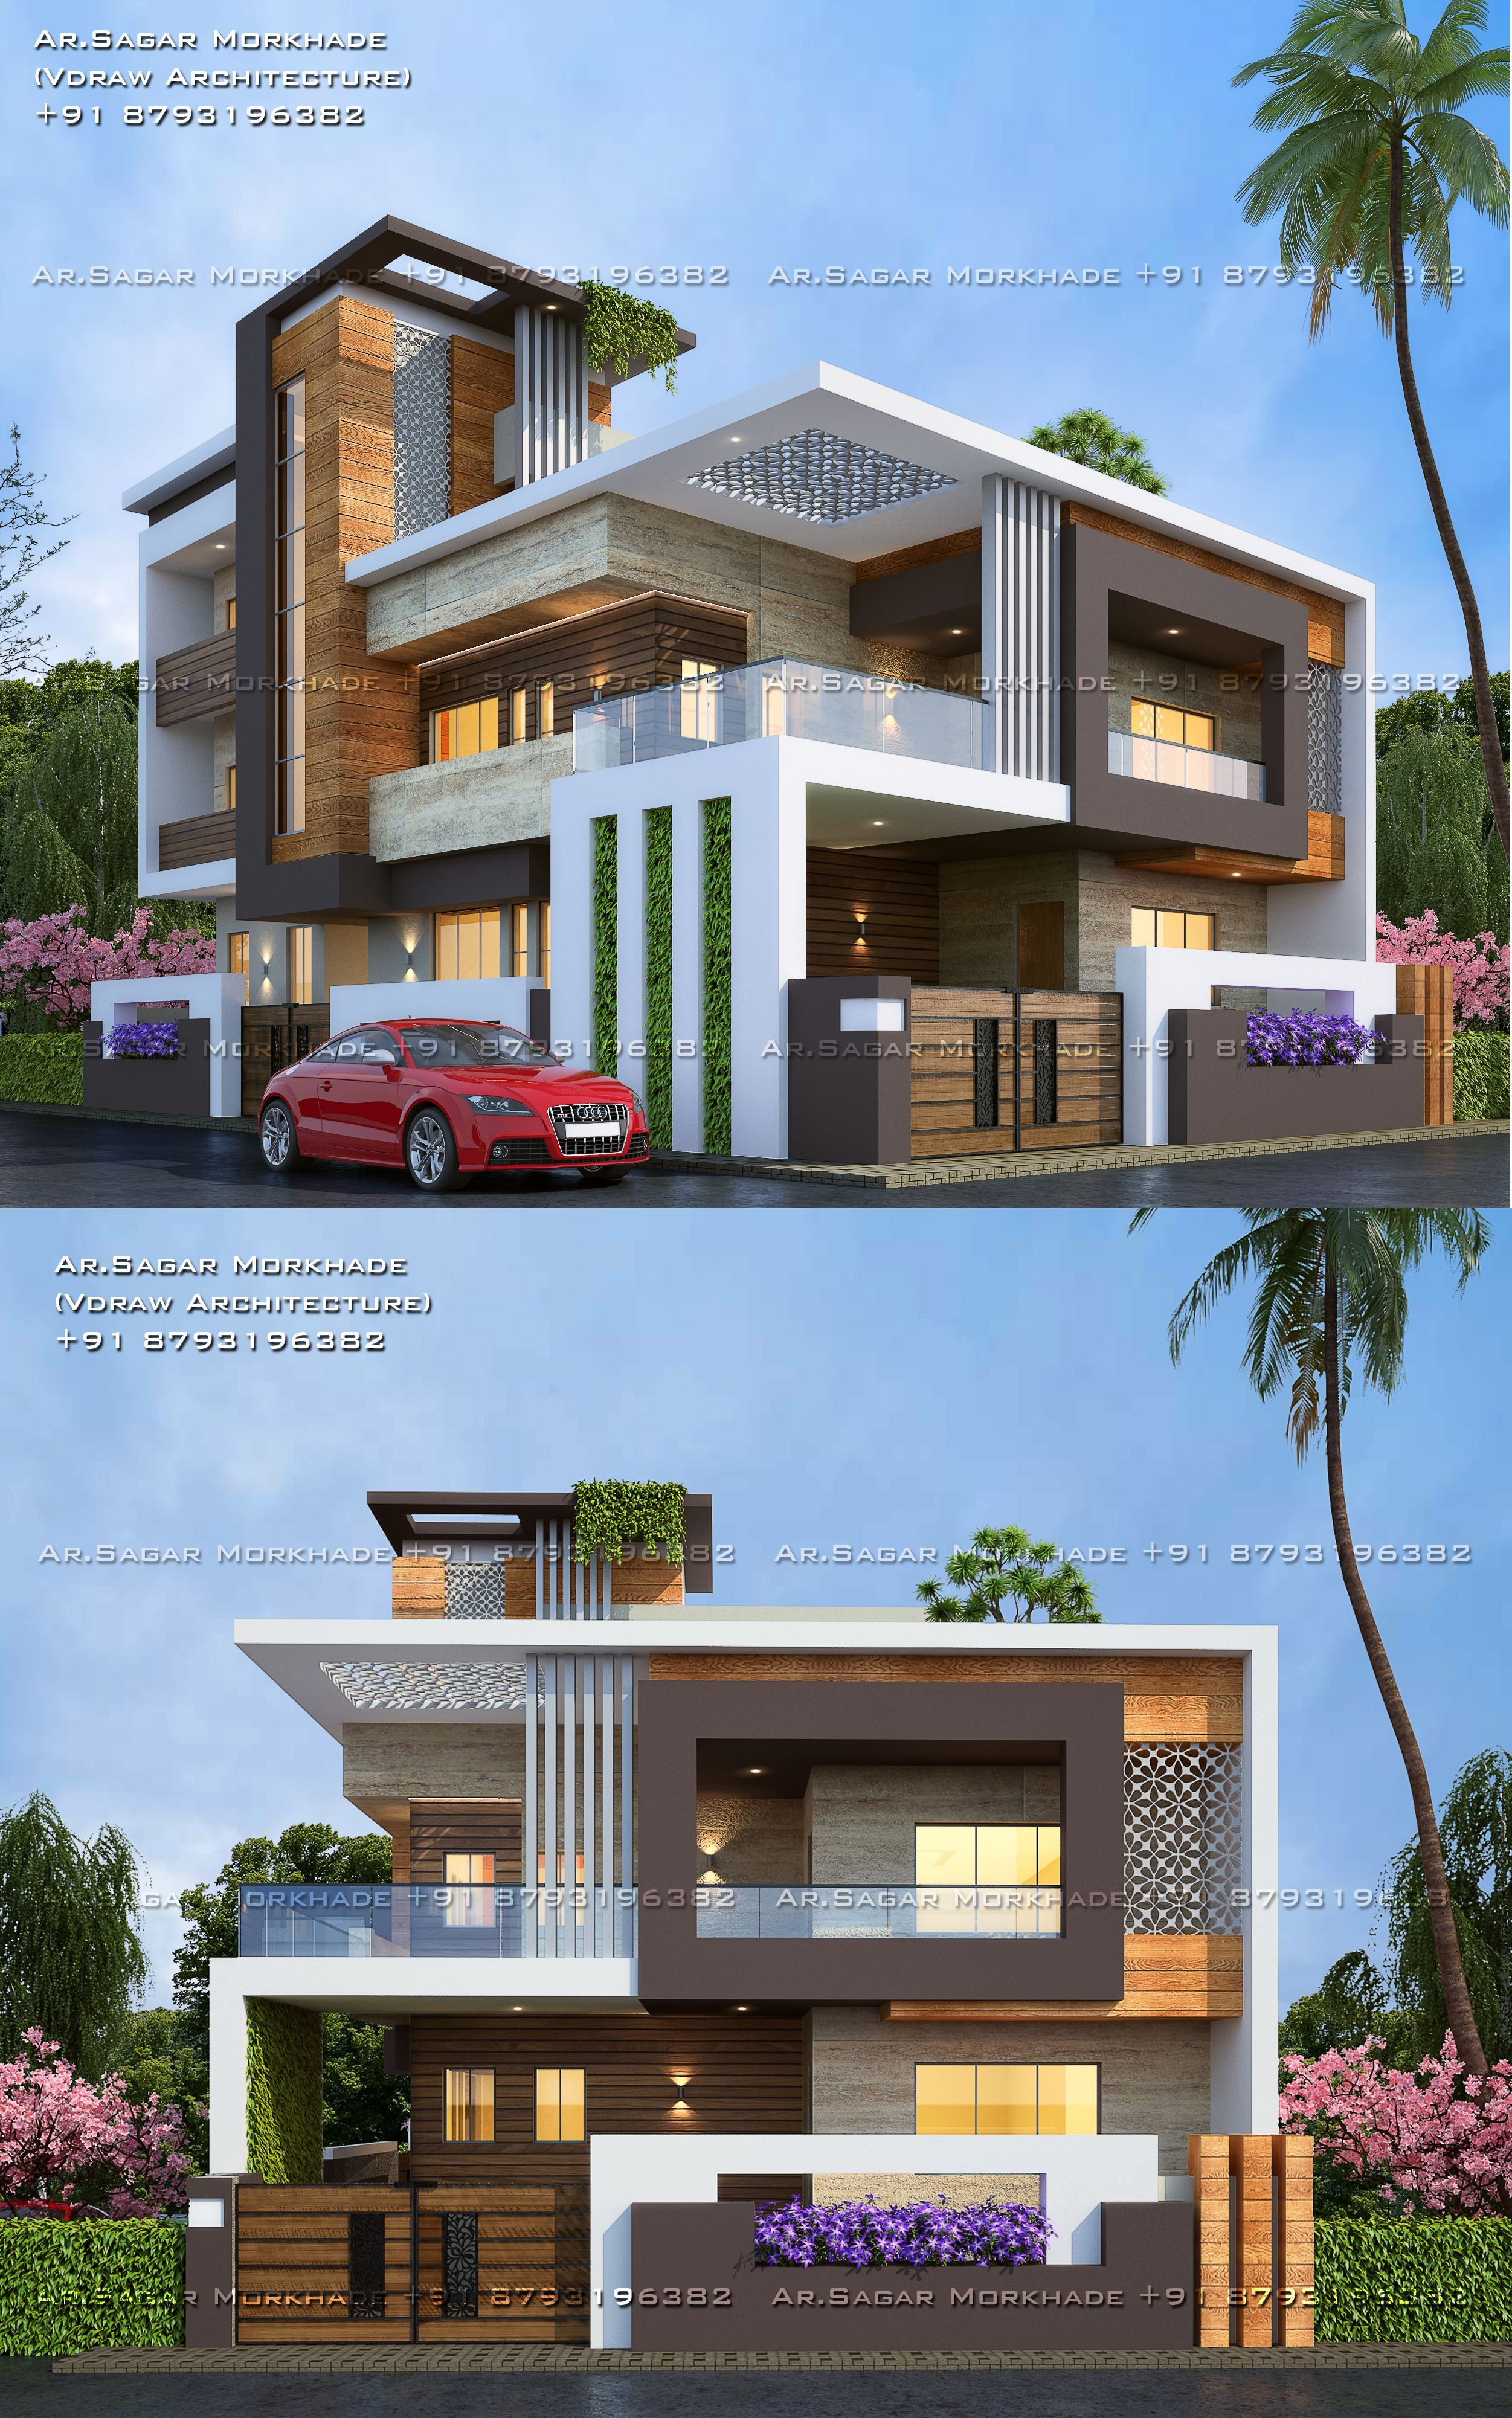 Best Small House Plans Residential Architecture 2020 House Front Design Modern Architecture House House Architecture Design